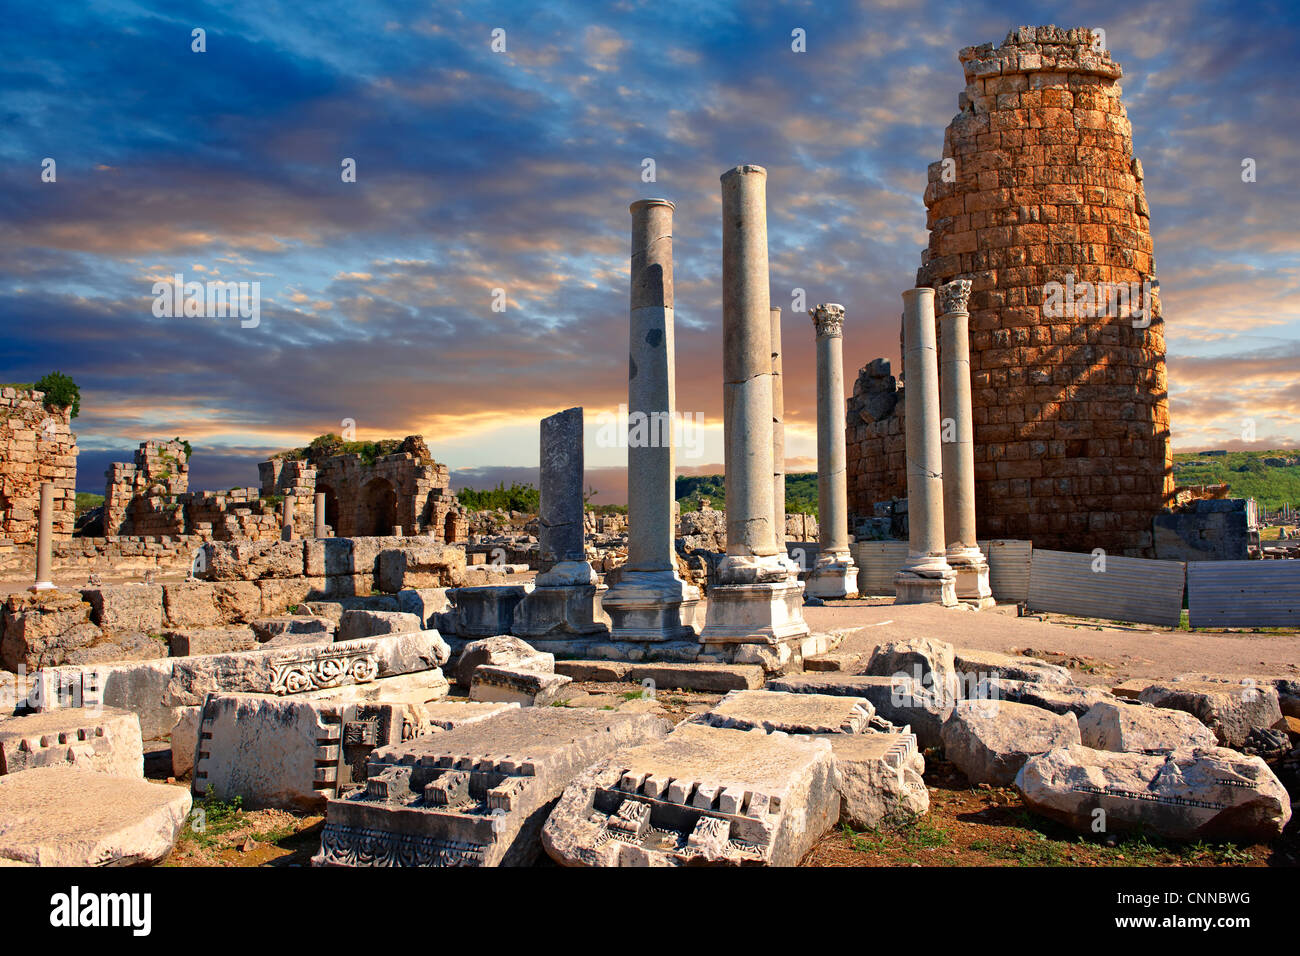 Ruins of the Hellenistic Gate towers of Perge. Perge (Perga) archaeological site, Turkey - Stock Image